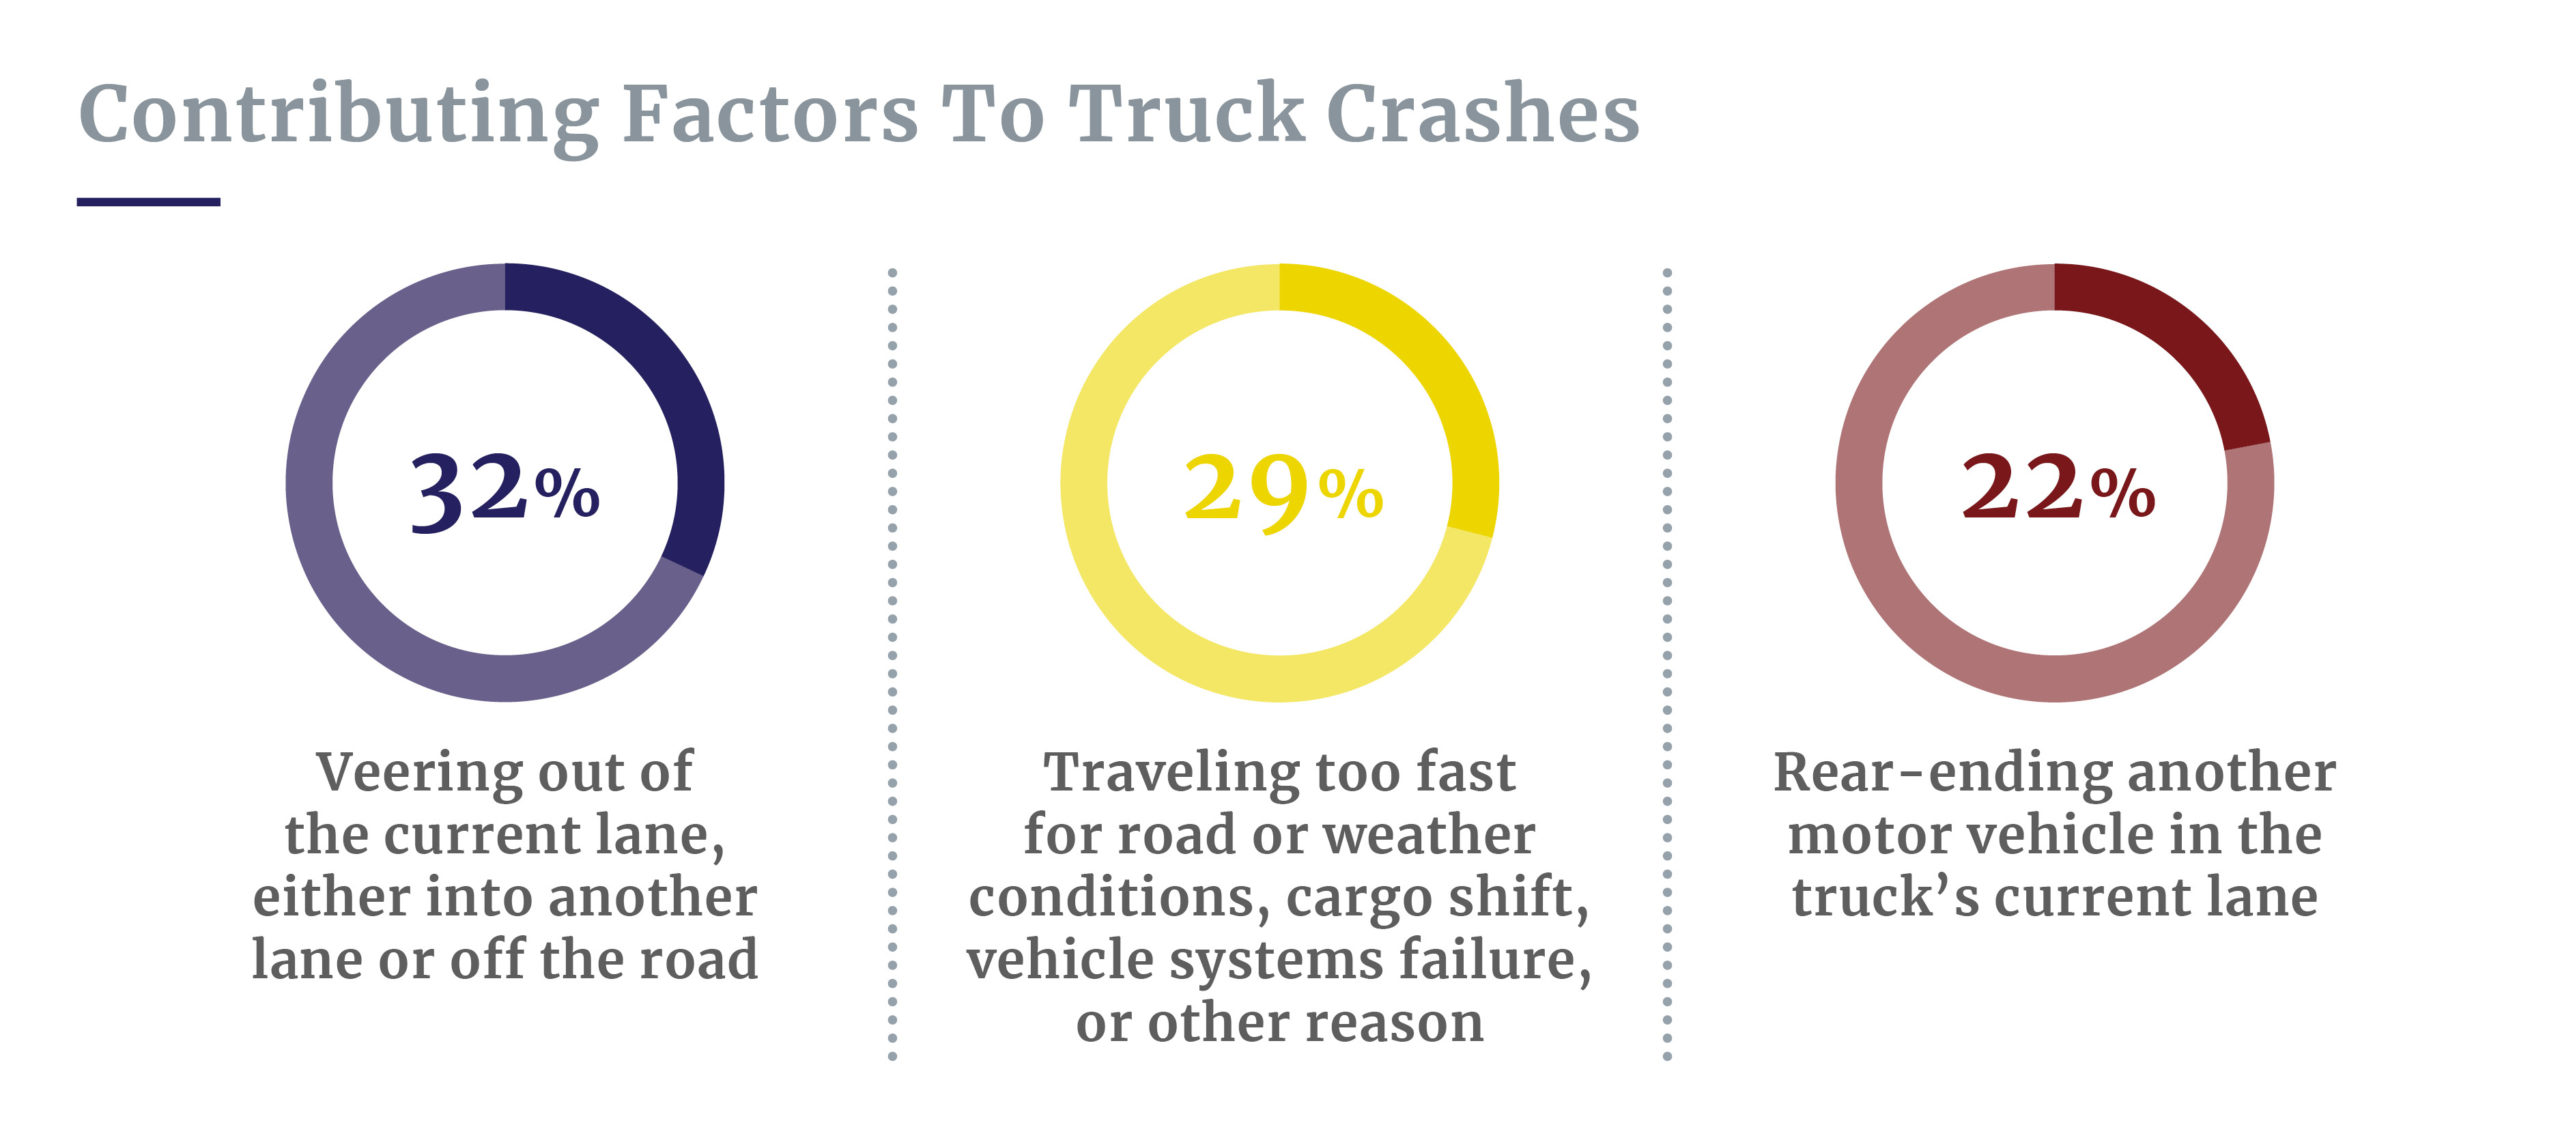 Contributing factors to truck crashes